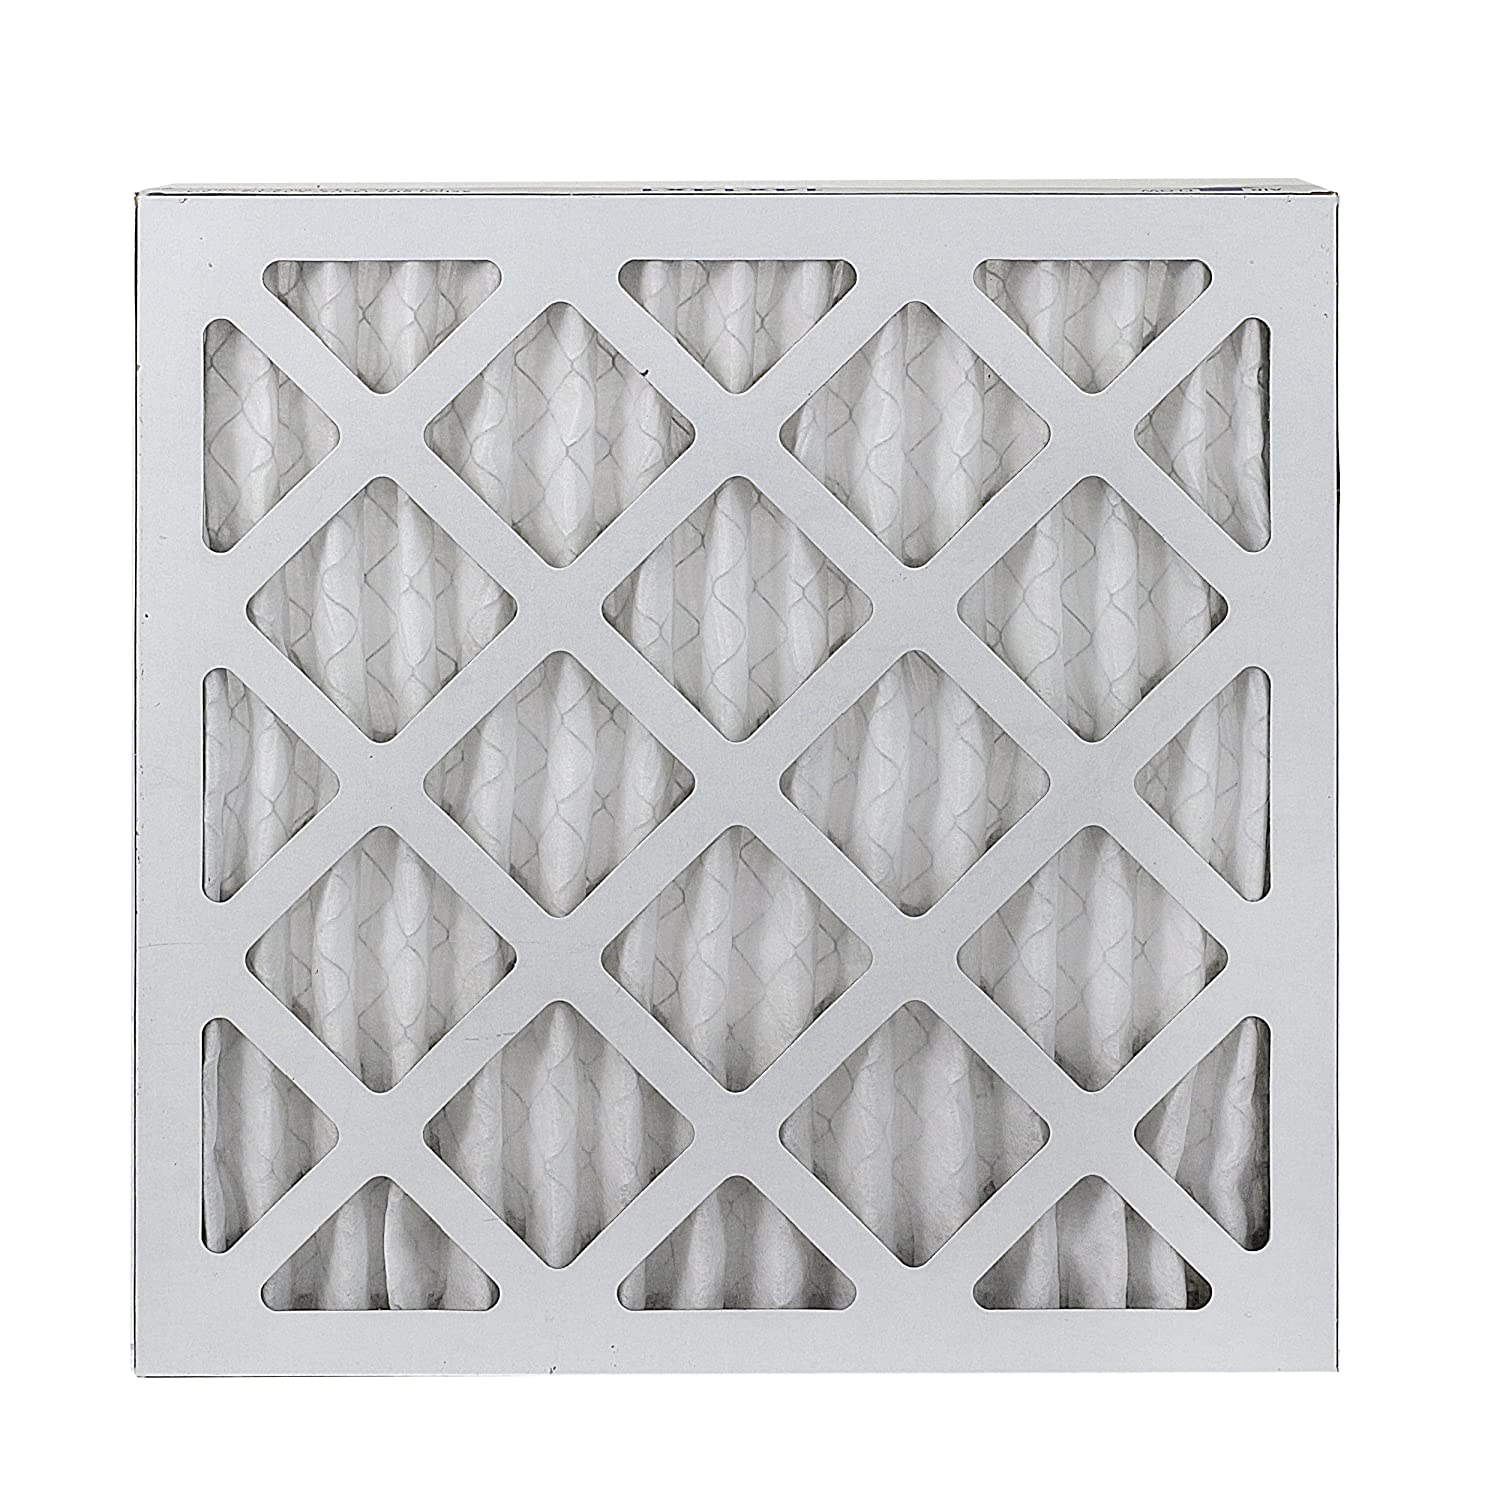 FilterBuy 12x12x1 MERV 8 Pleated AC Furnace Air Filter, Silver Pack of 6 Filters 12x12x1